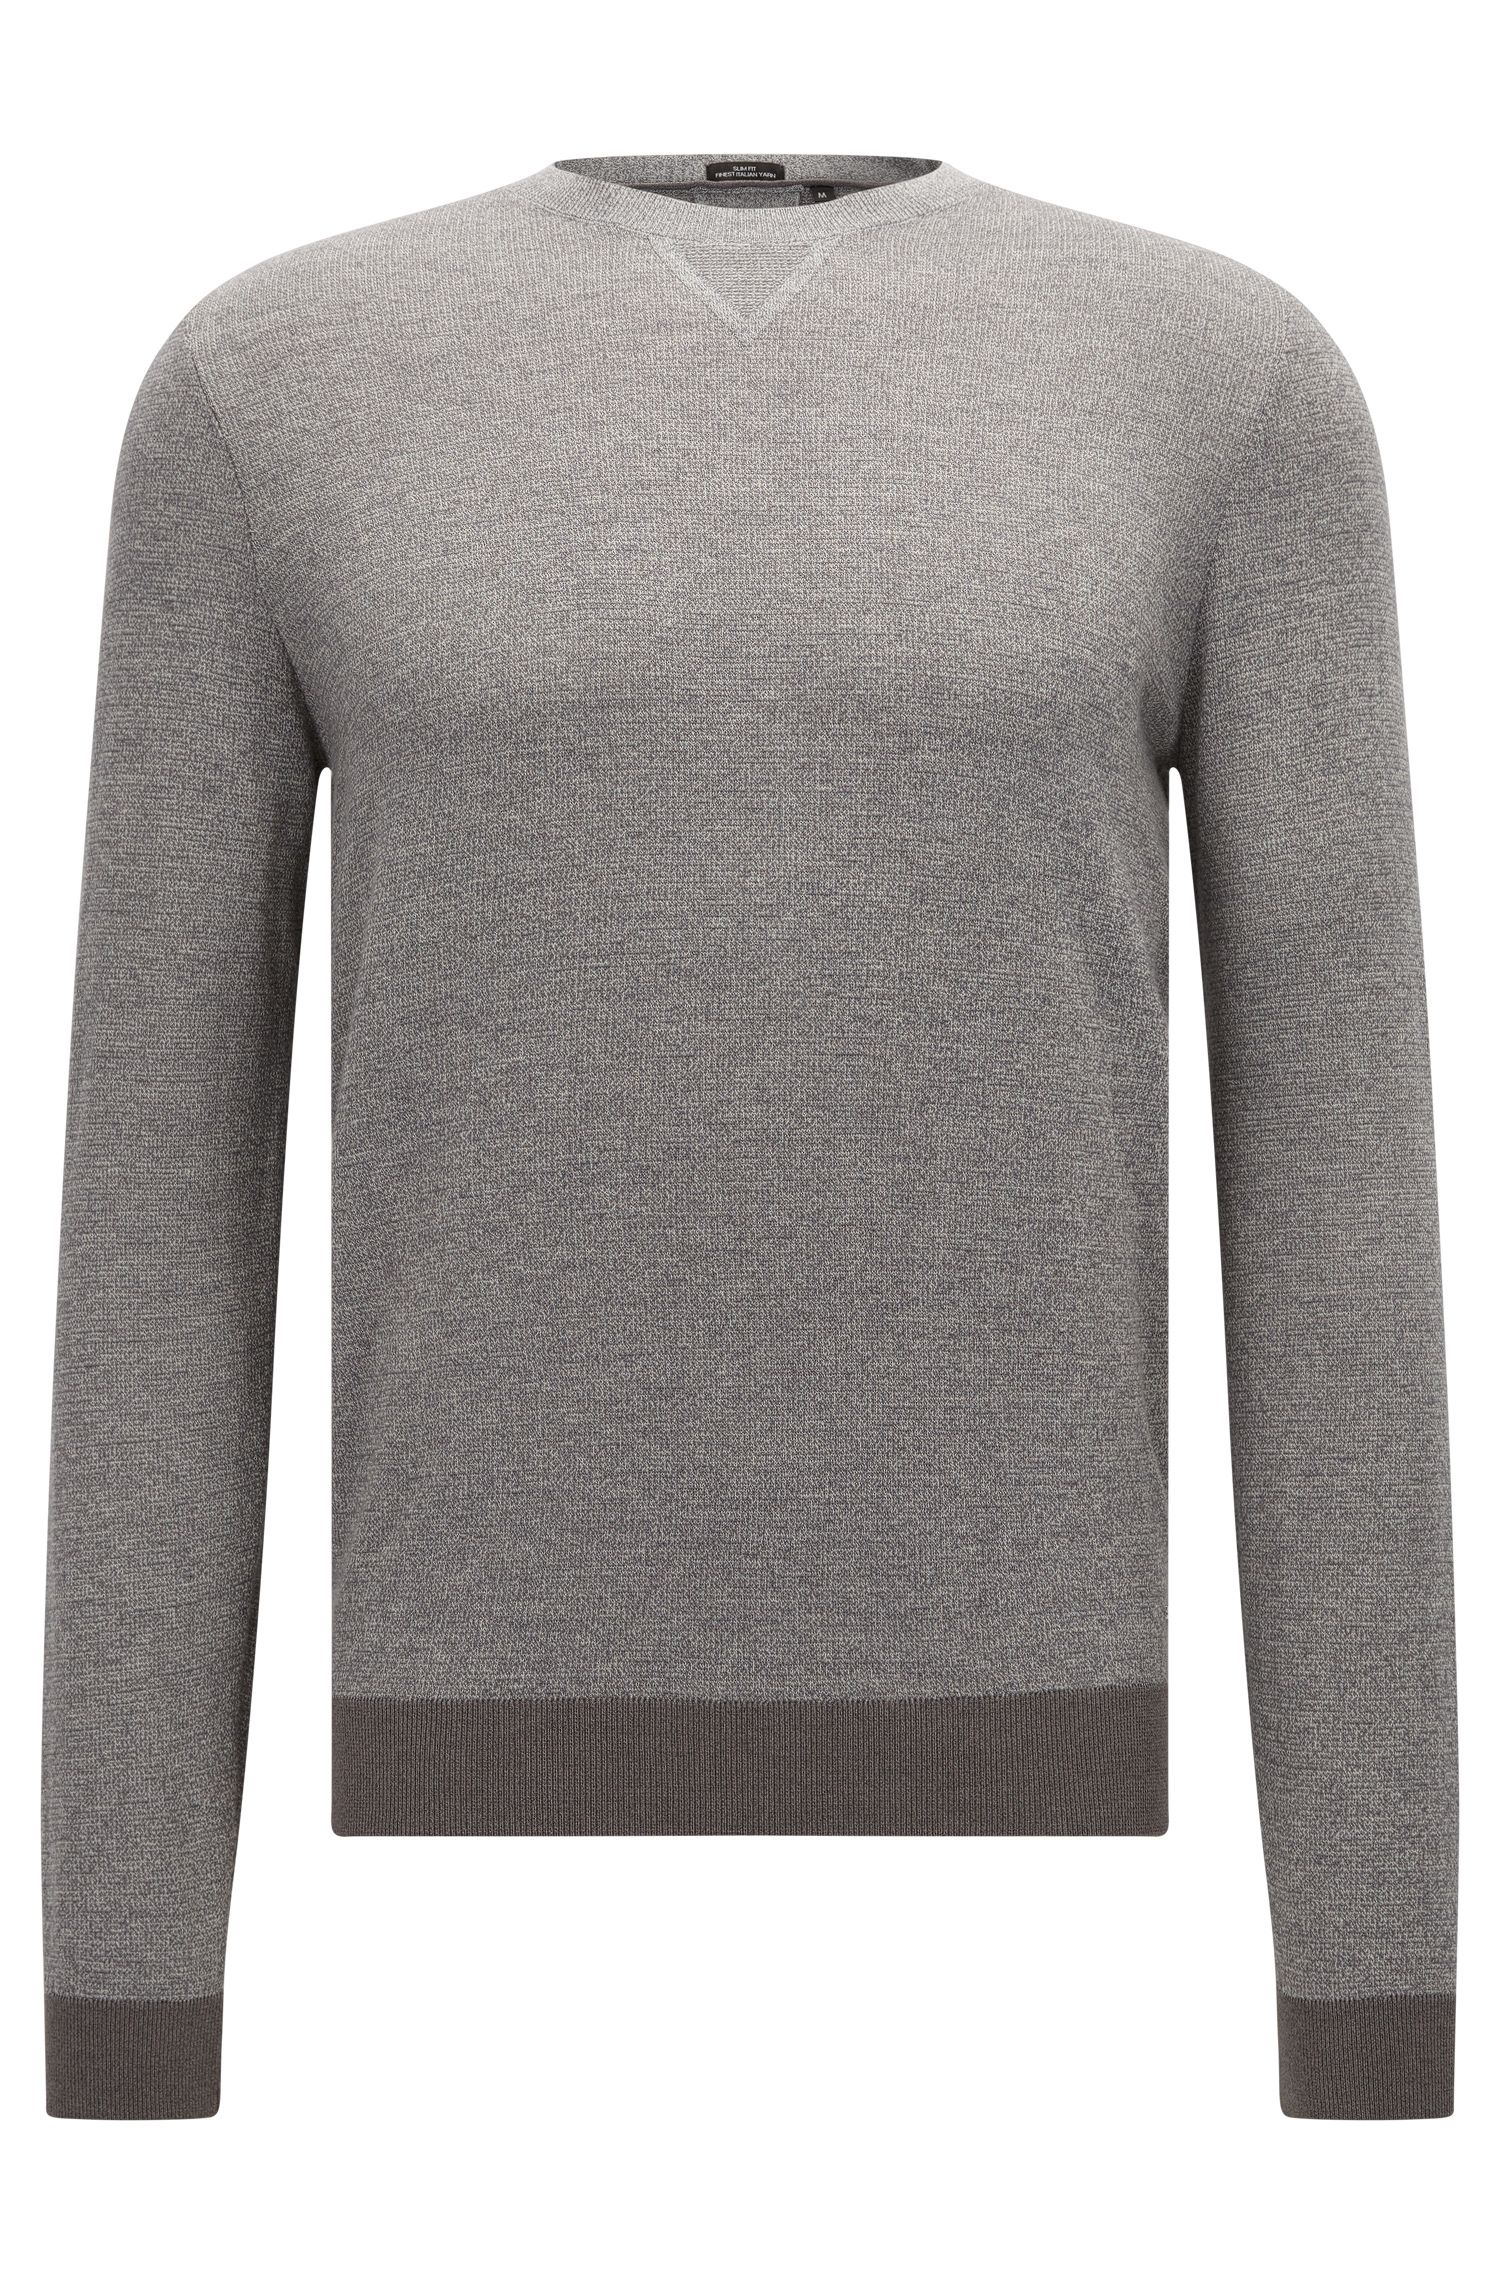 'T-Mateo' | Italian Virgin Wool Cotton Sweater